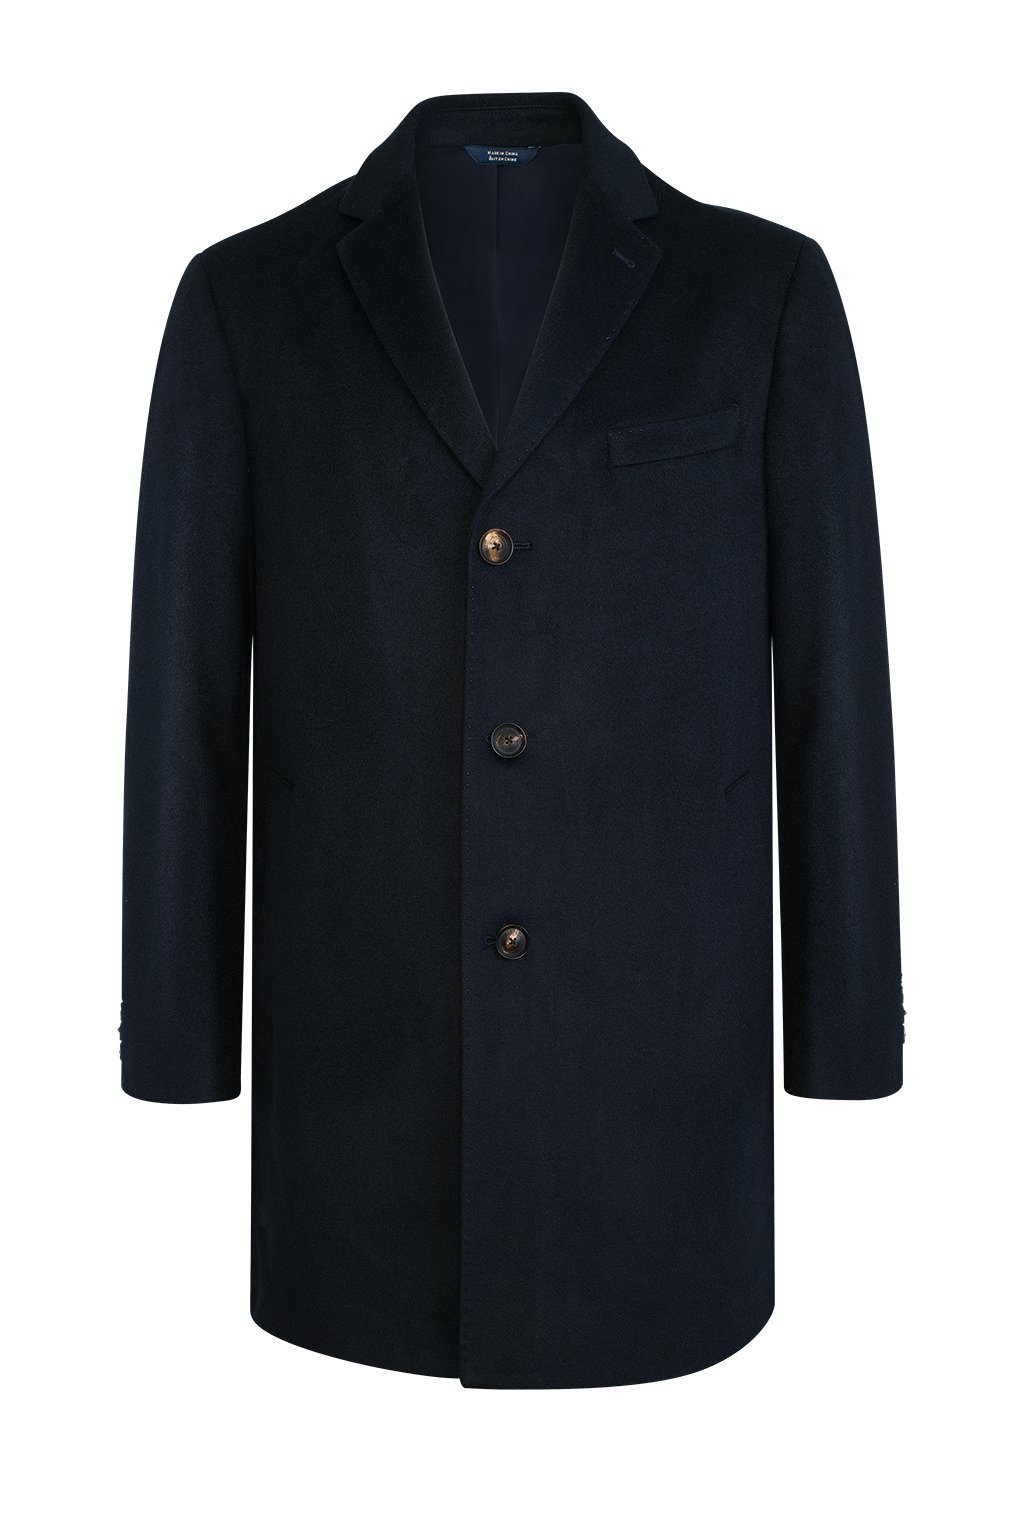 Navy Saint-Paul Cashmere Wool Heritage Overcoat - Cardinal of Canada-US